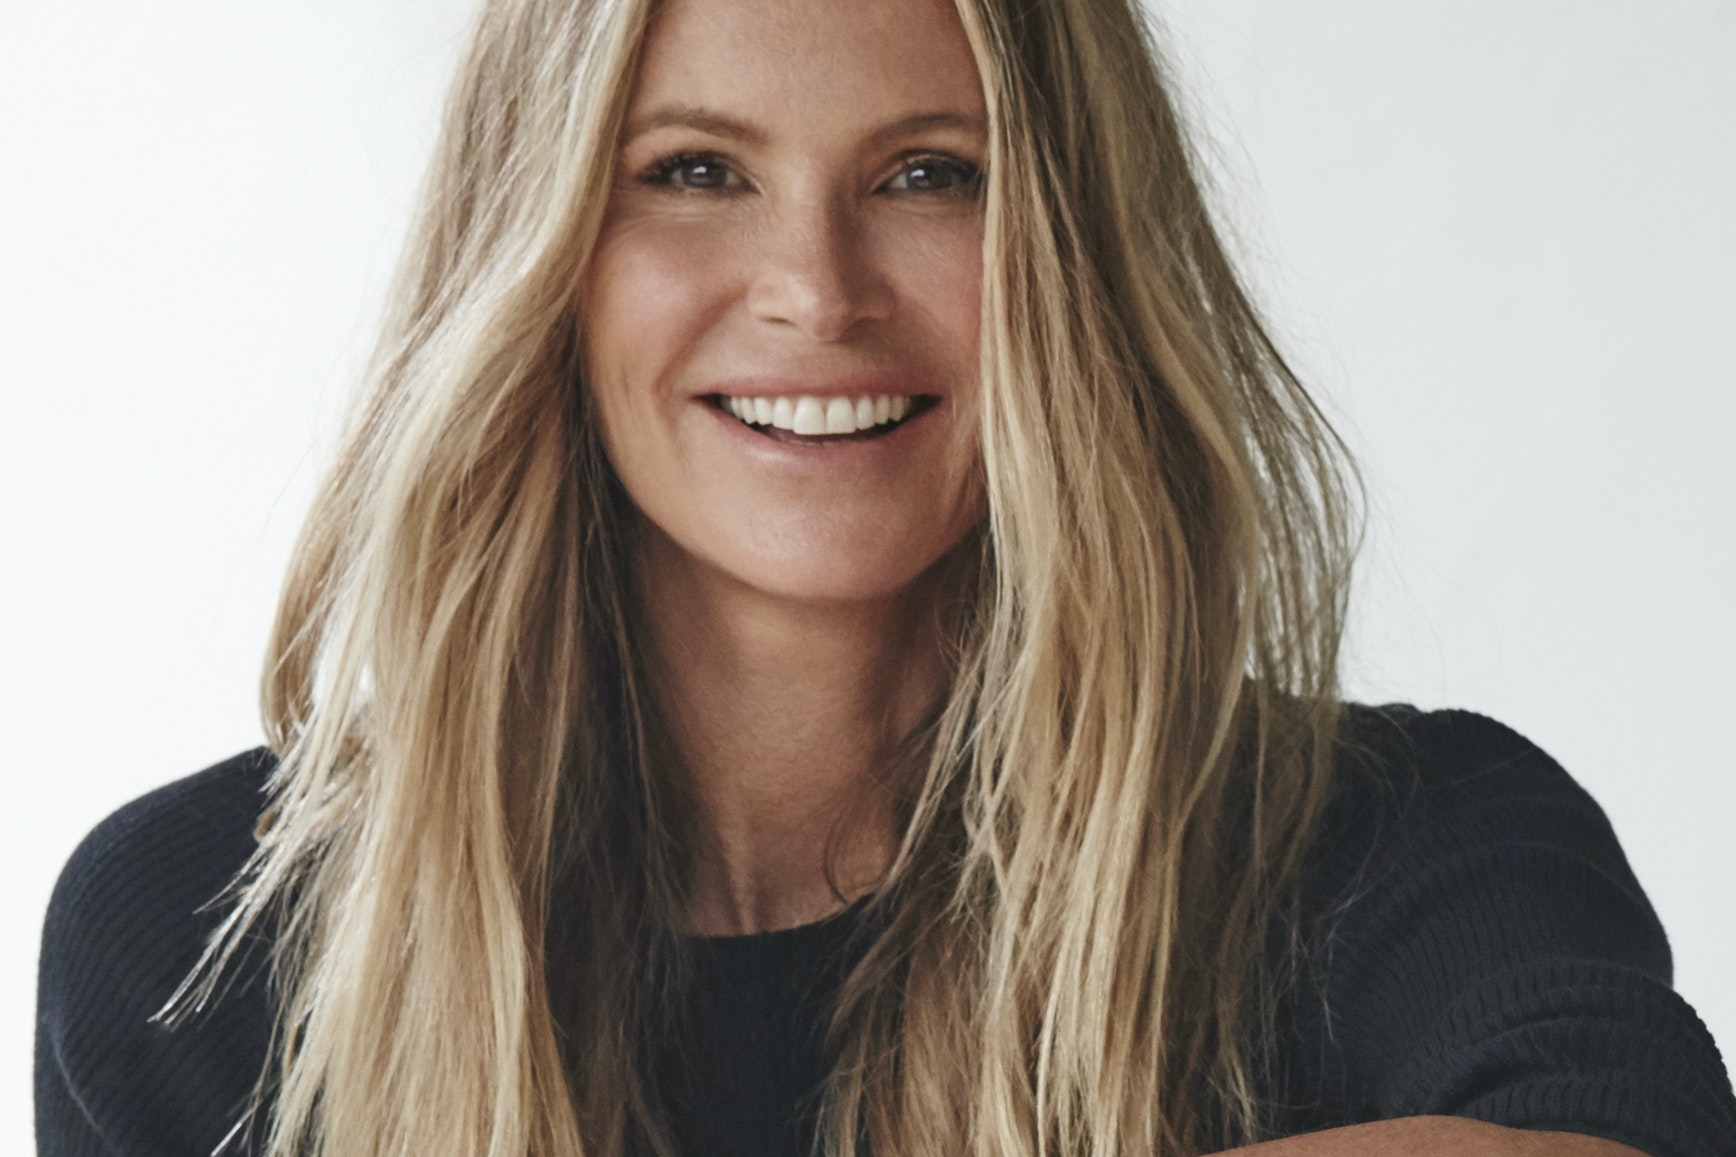 Iconic Supermodel and Businesswoman Elle Macpherson Shares Her Big A-Ha Moments